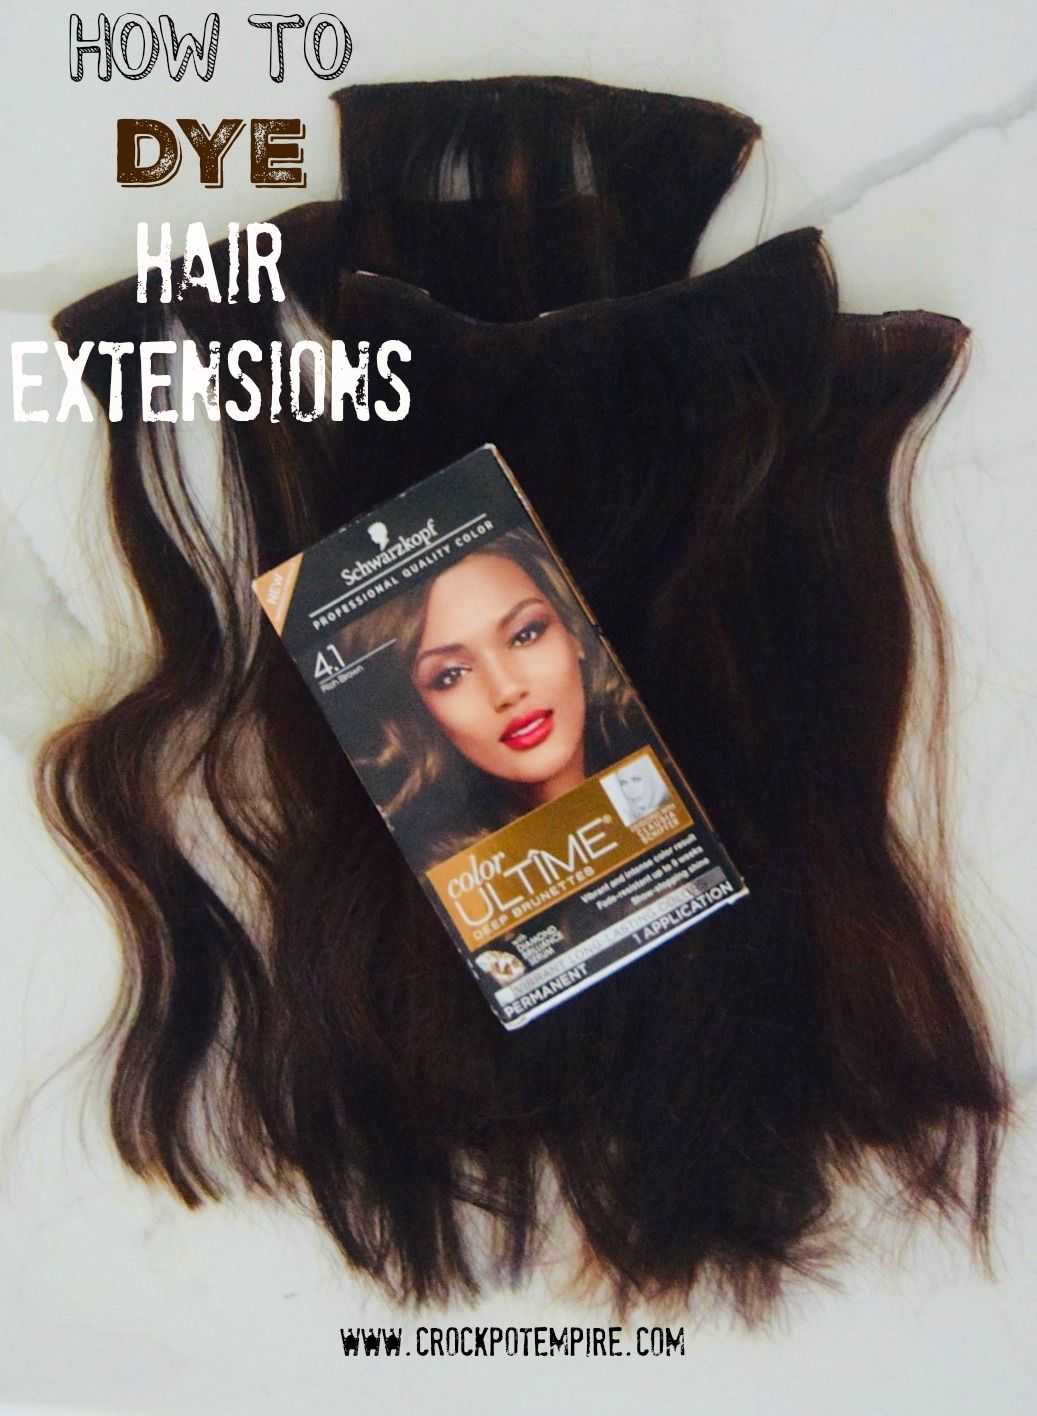 From changing up your hair color to dyeing your hair extensions from changing up your hair color to dyeing your hair extensions get hair color tips for dyeing your hair at home using schwarzkopf color ultme box color pmusecretfo Gallery